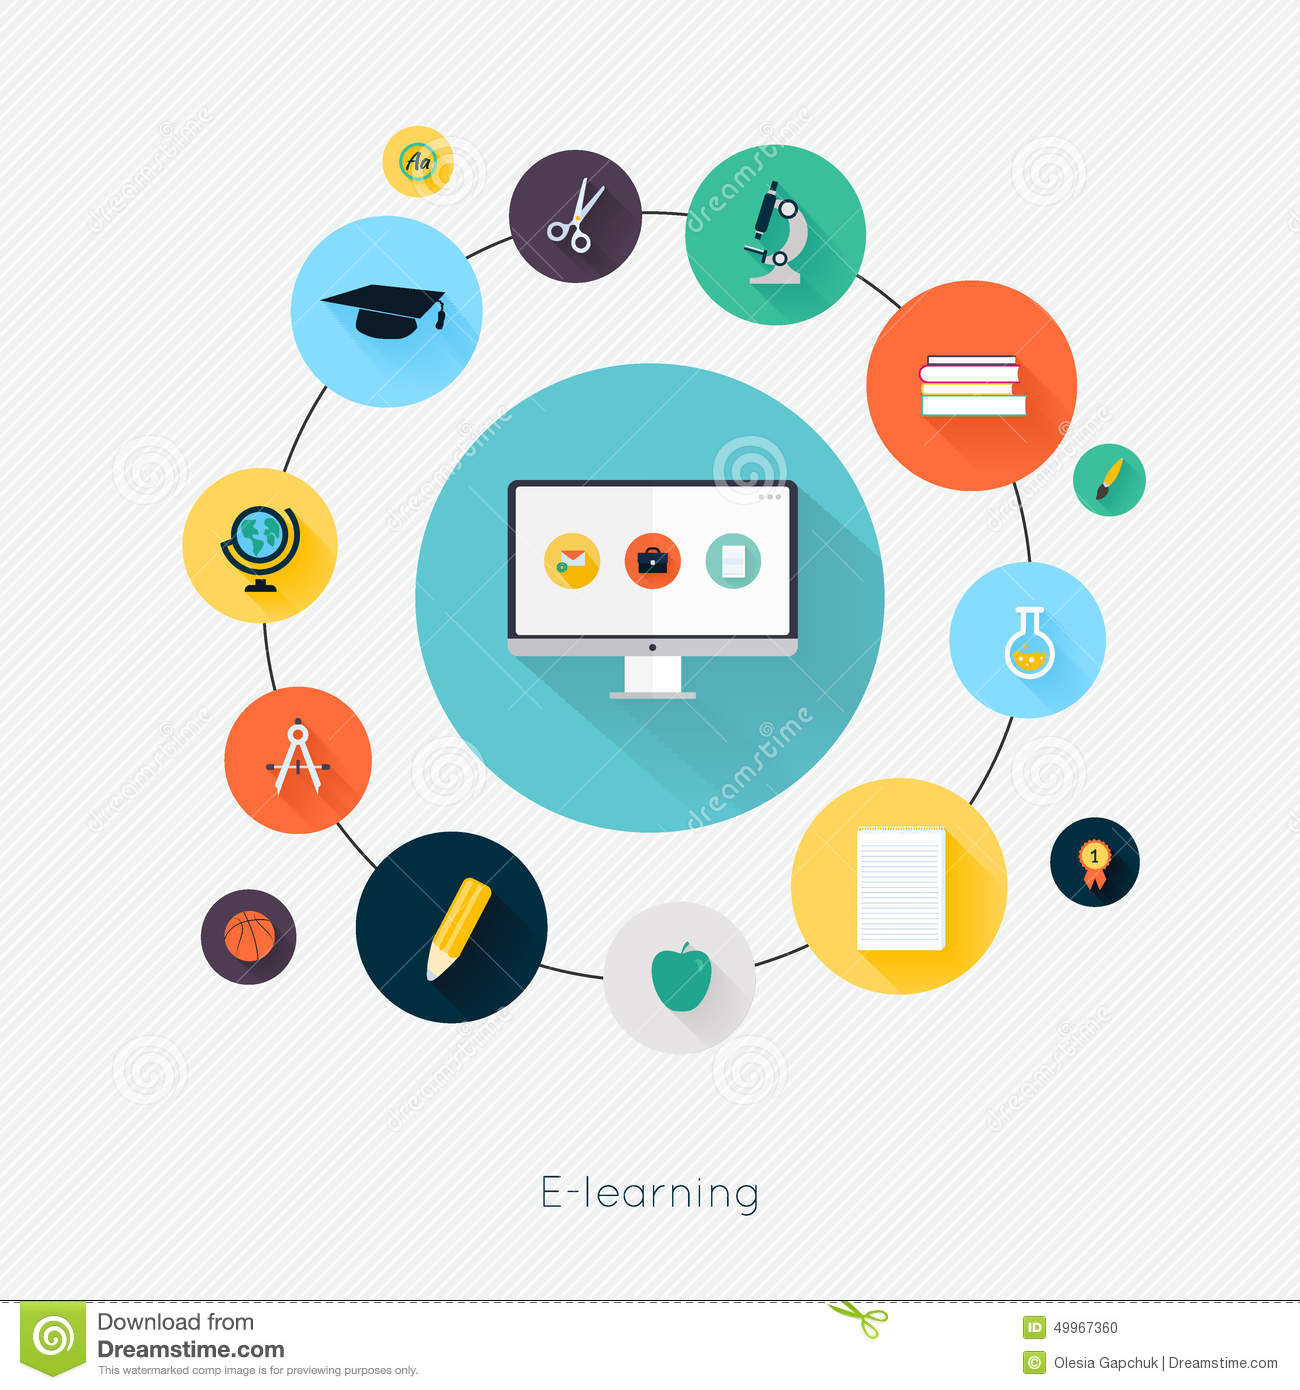 E learning poster designs - Education School University E Learning Flat Poster With Monitor Stock Vector